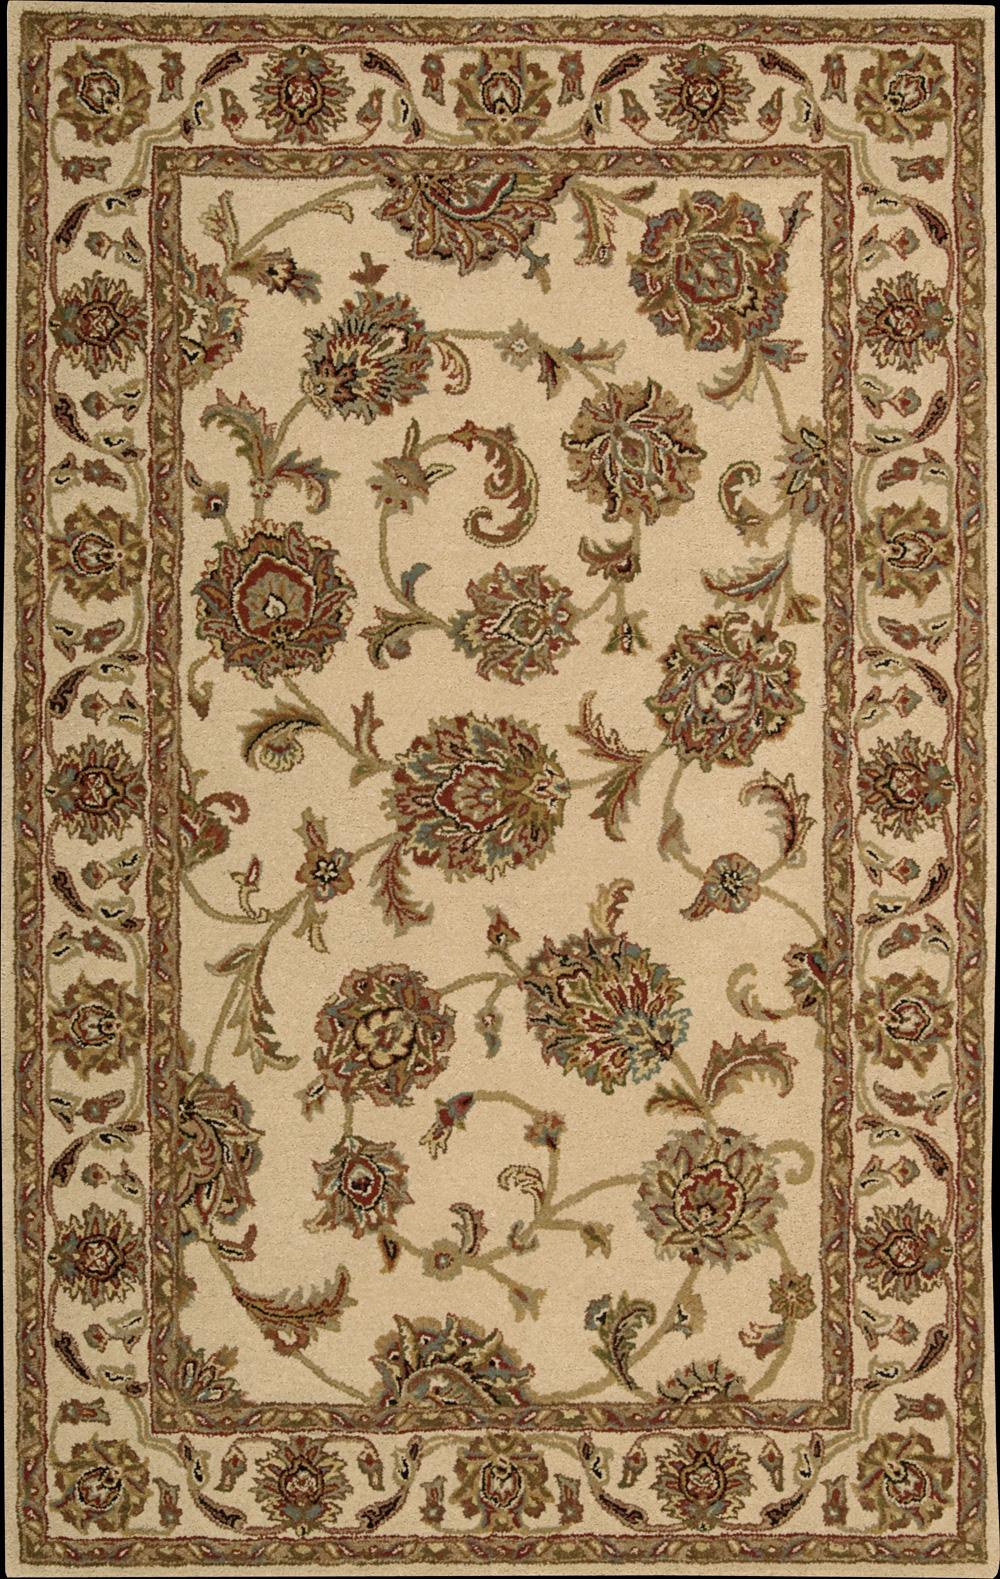 Nourison India House Area Rug 5' x 8' - Item Number: 41637